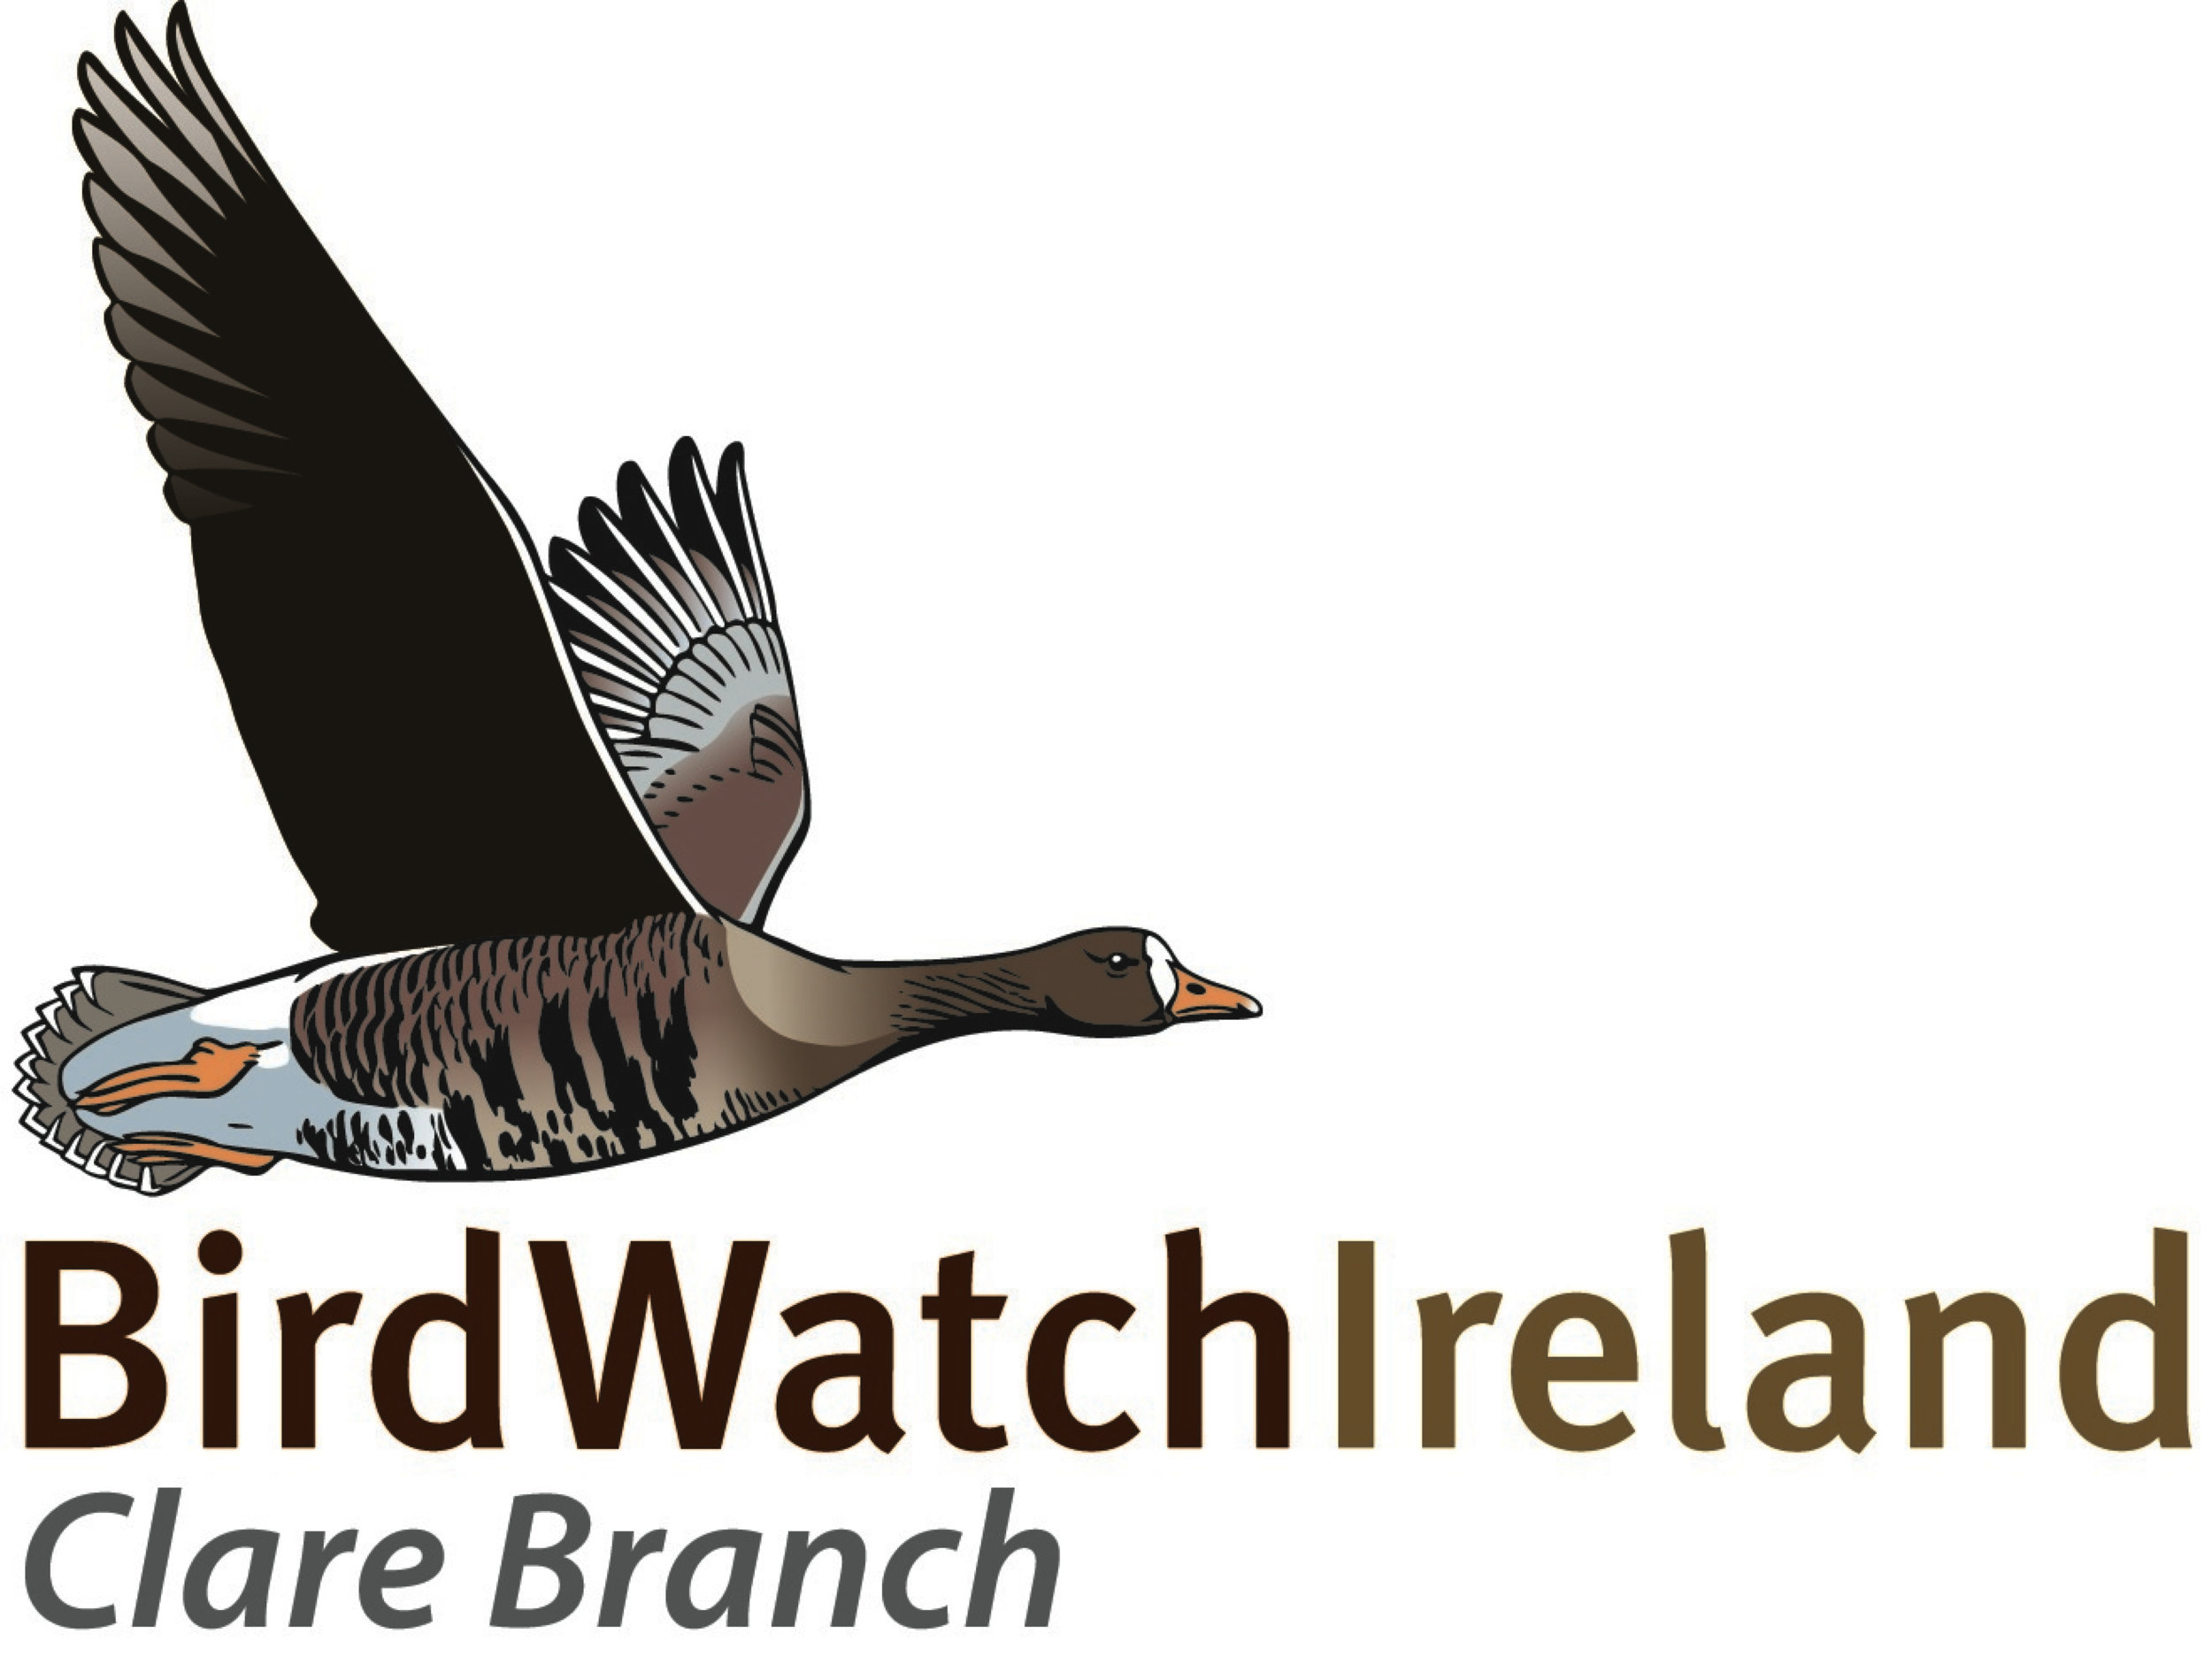 Birdwatch Ireland Clare Branch